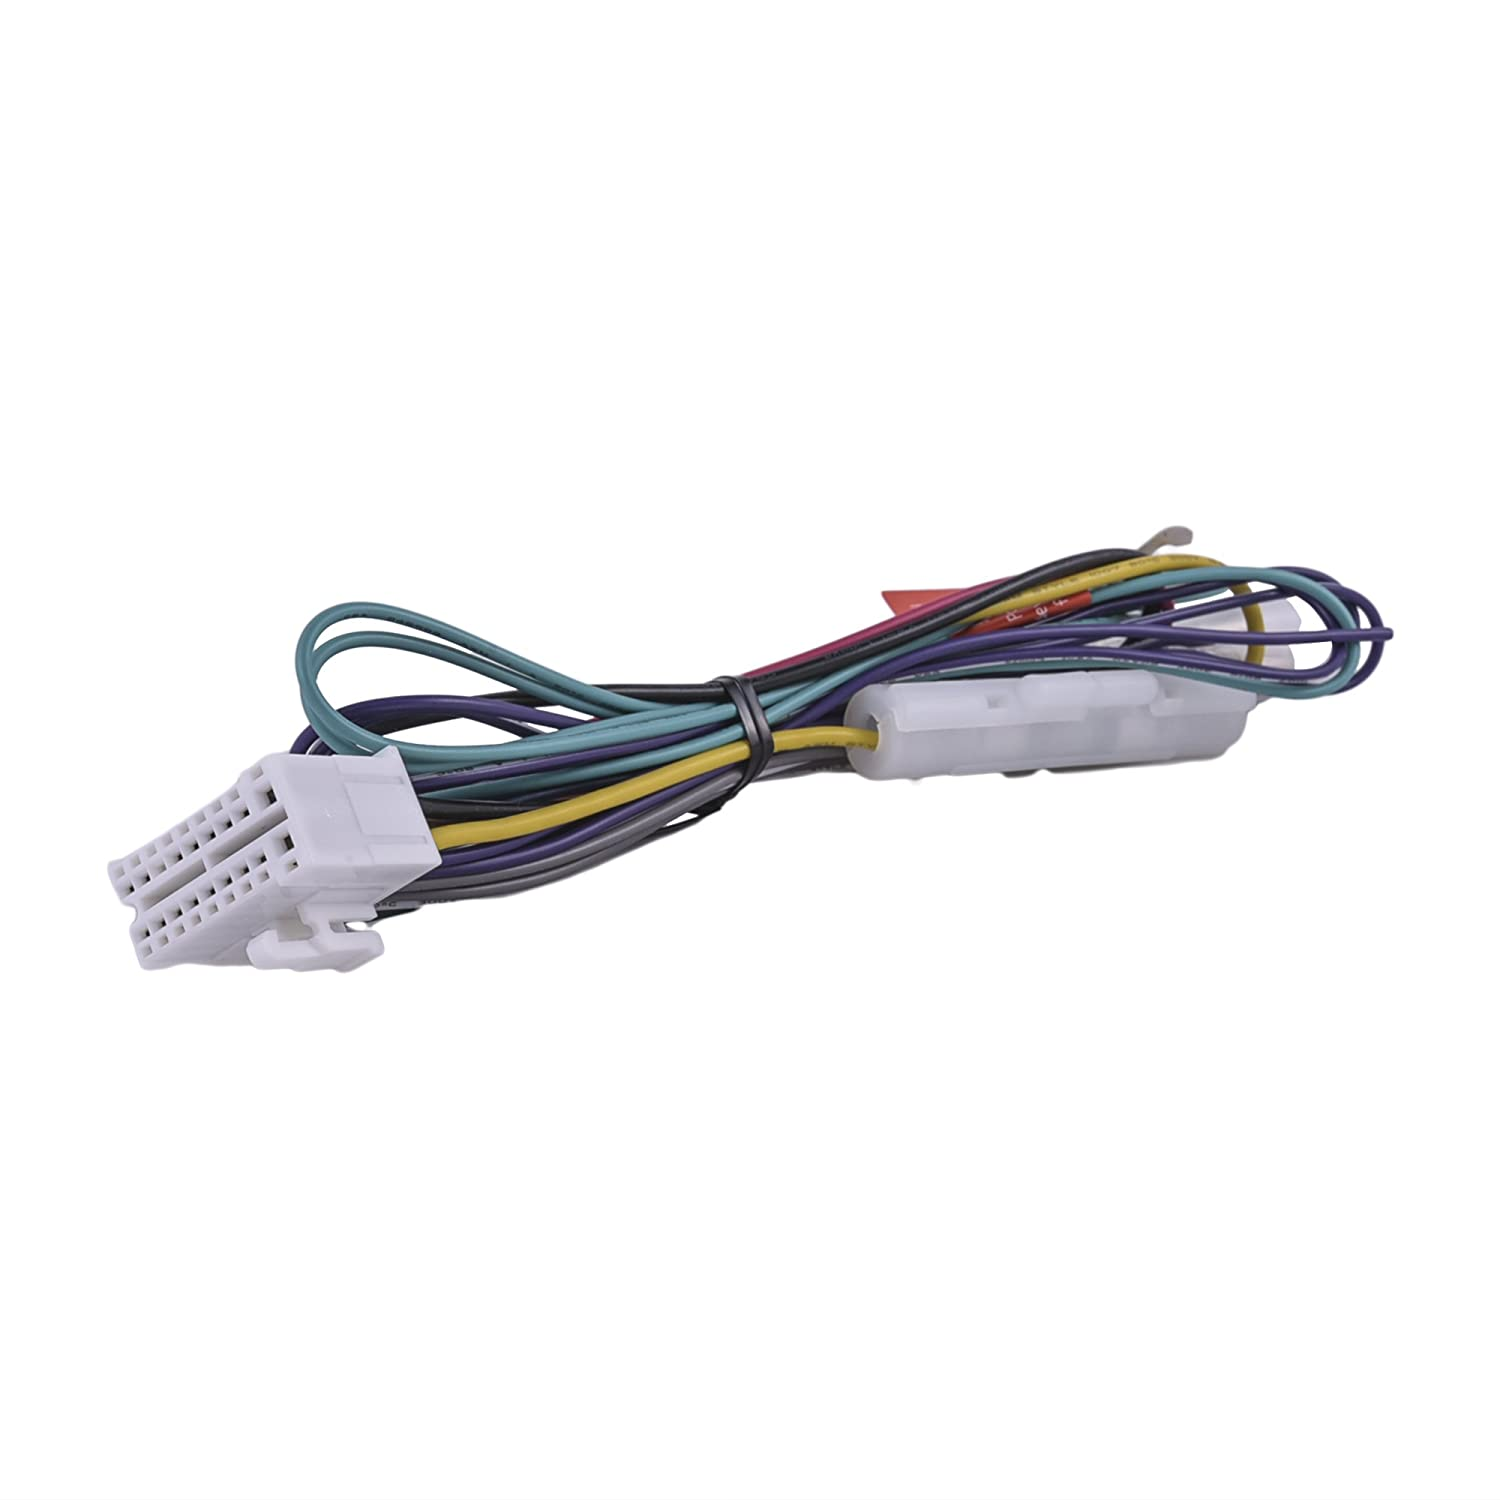 Clarion 405 Wiring Harness Diagram Electrical Wire For M109 Nx604 Wires Library Rh 7 Gebaeudereinigung Pach De